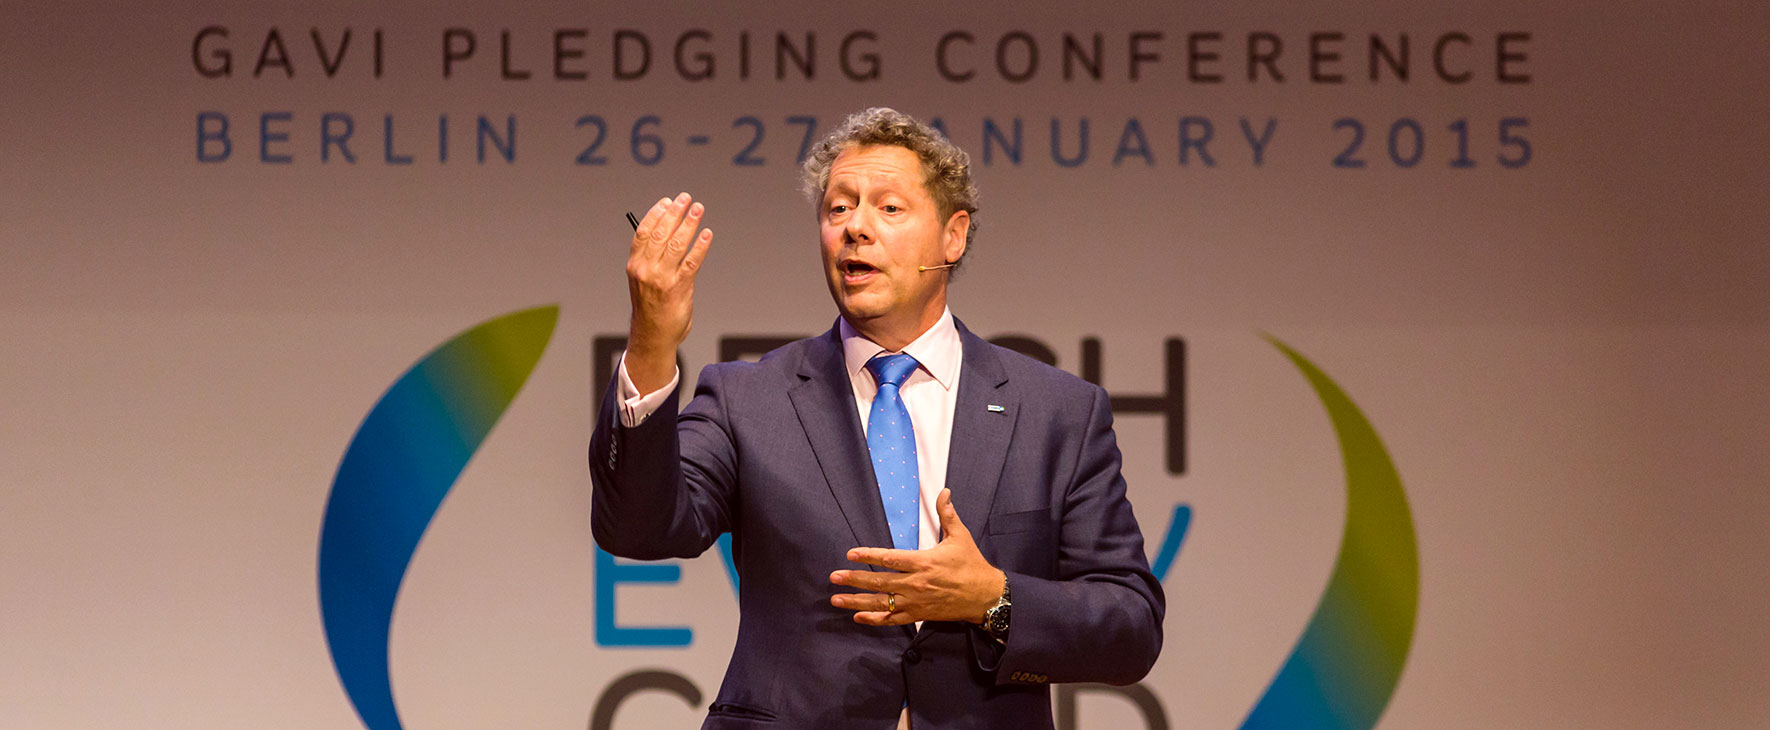 Seth Berkley at the 2015 Gavi pledging conference. Credit: Gavi/2015/Stefan Zeits.